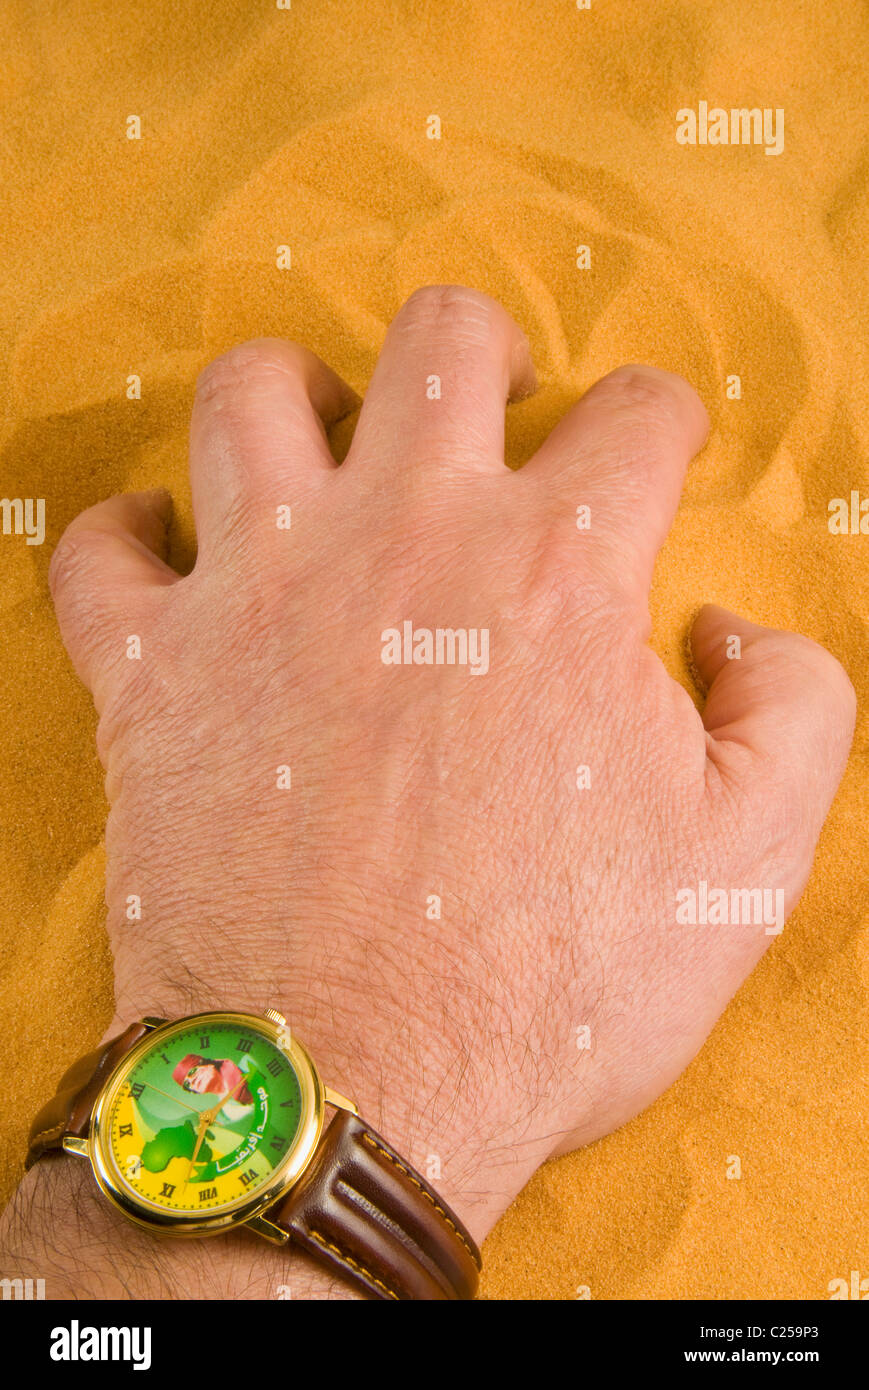 Hand and watch with the face of Muammar Muhammad al-Gaddafi leader of Libya on the Sahara sand - Stock Image